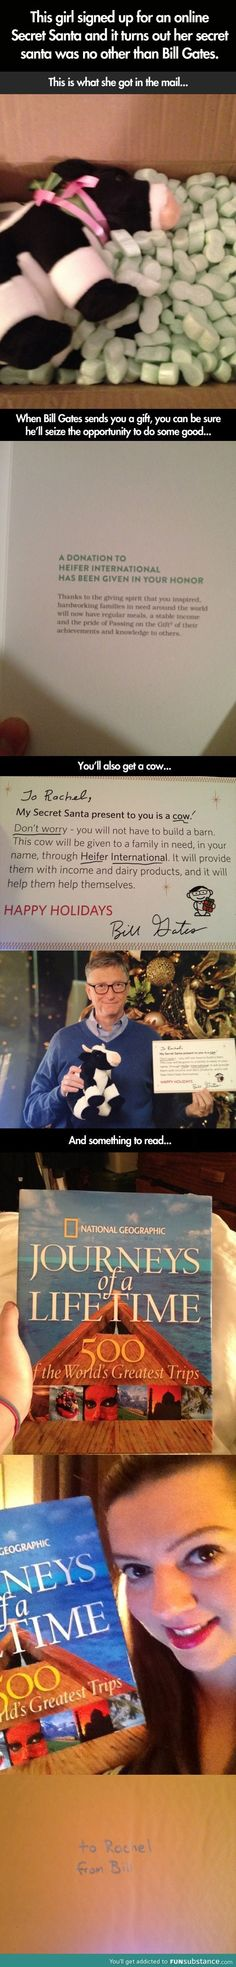 What Bill Gates Gave a Random Stranger in an online Secret Santa